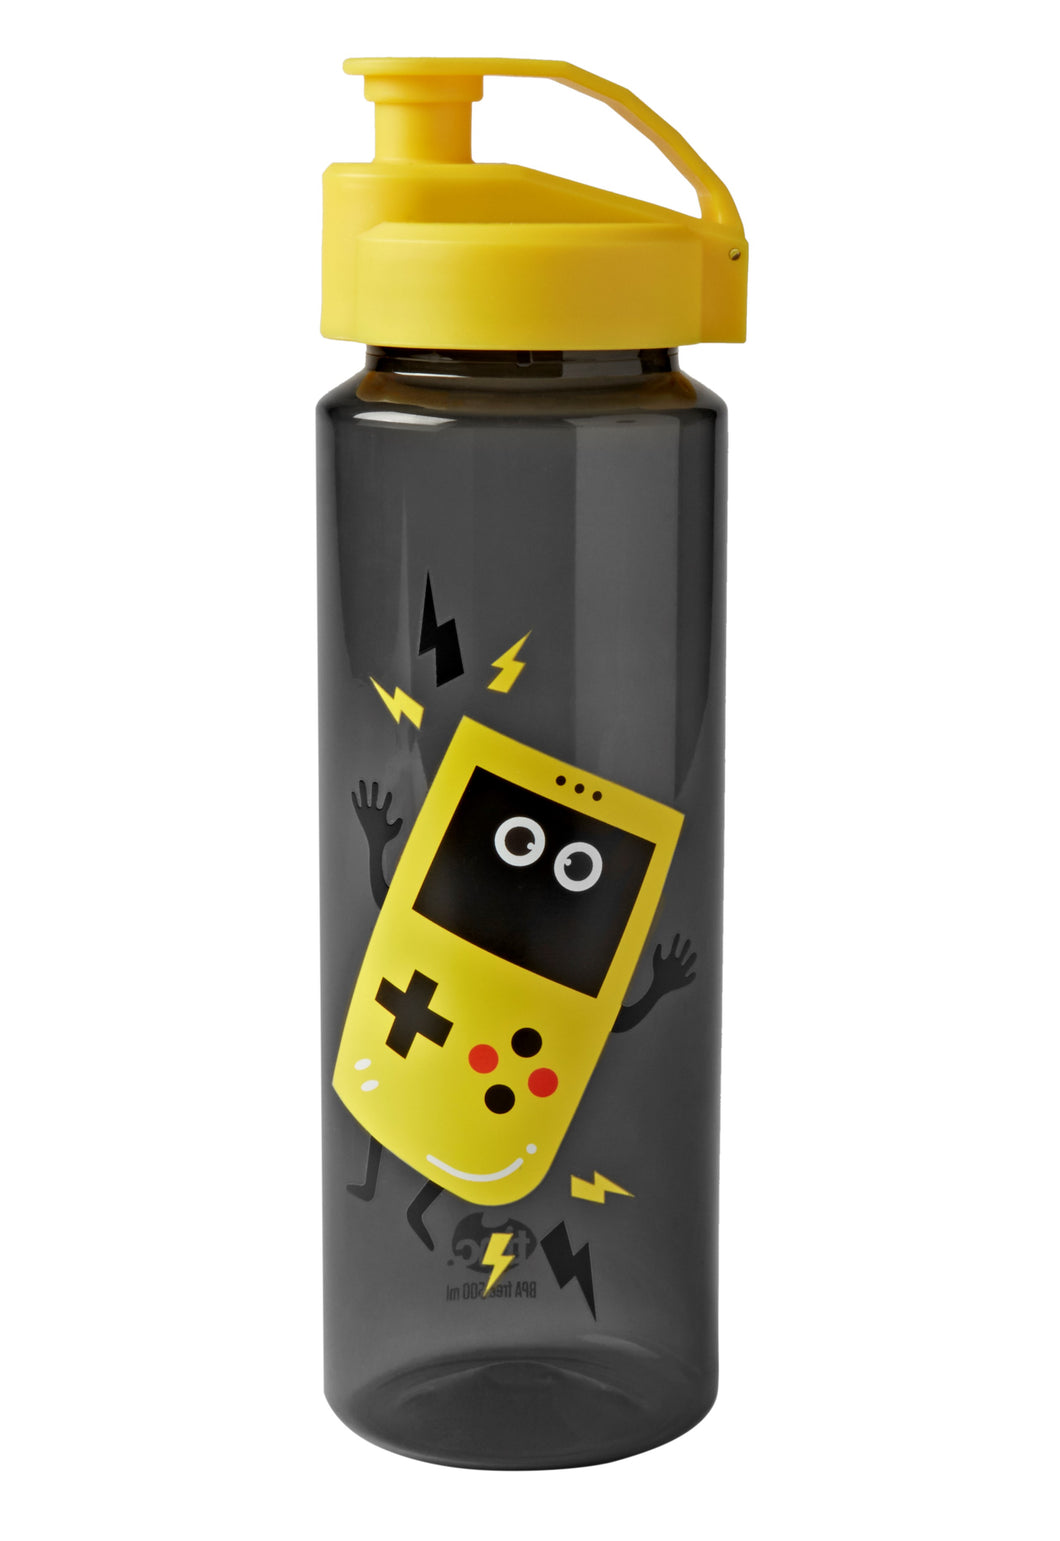 Tinc gaming design water bottle in yellow and black